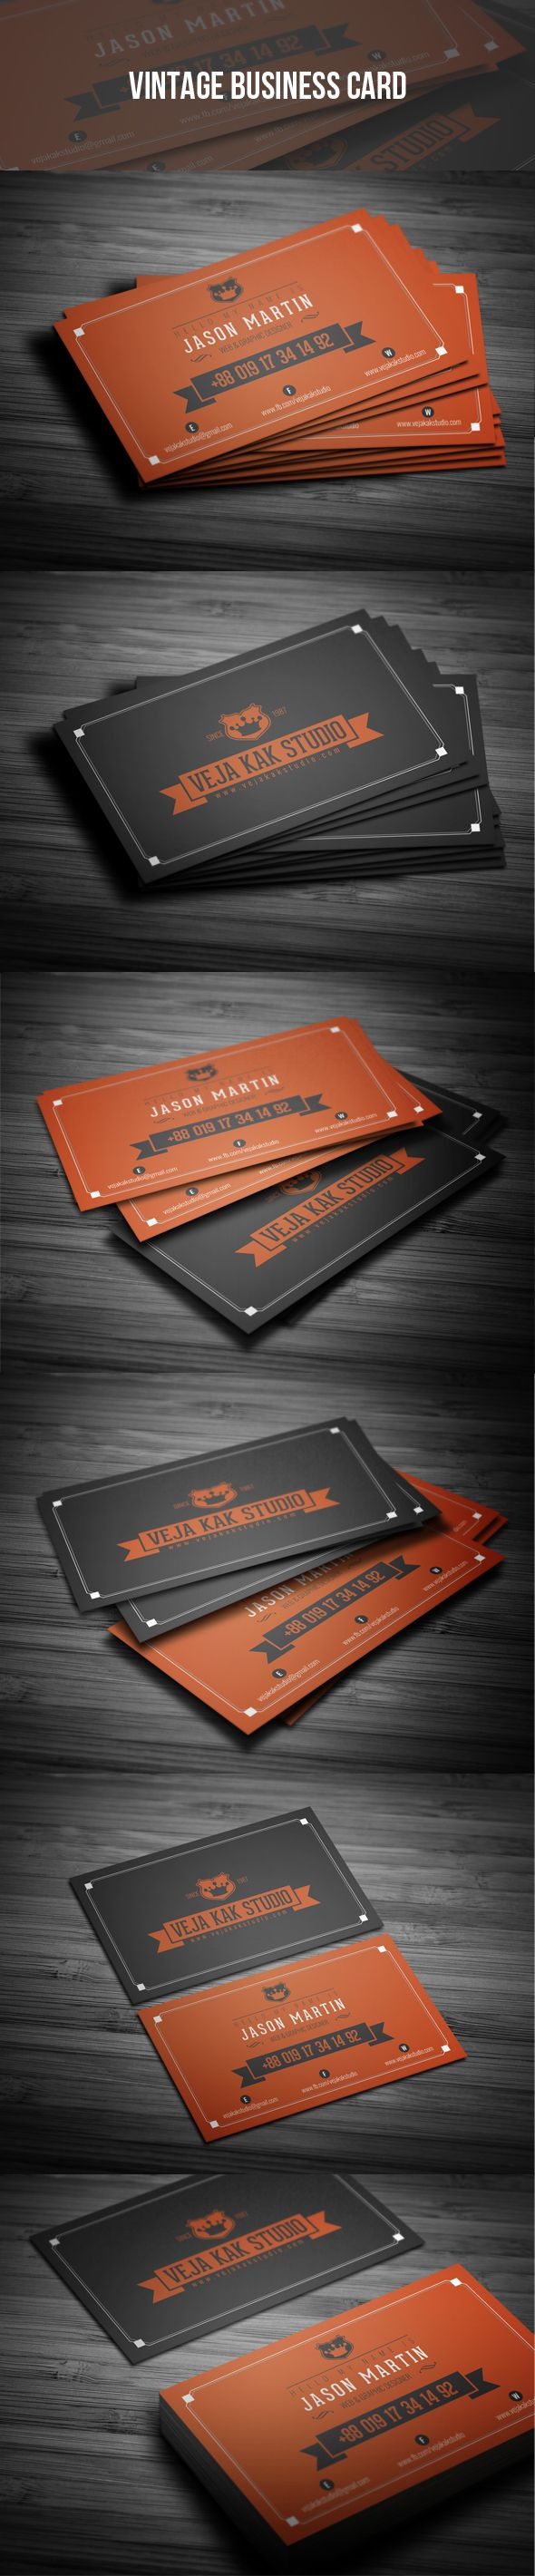 The 77 best Business Card Designs images on Pinterest | Business ...